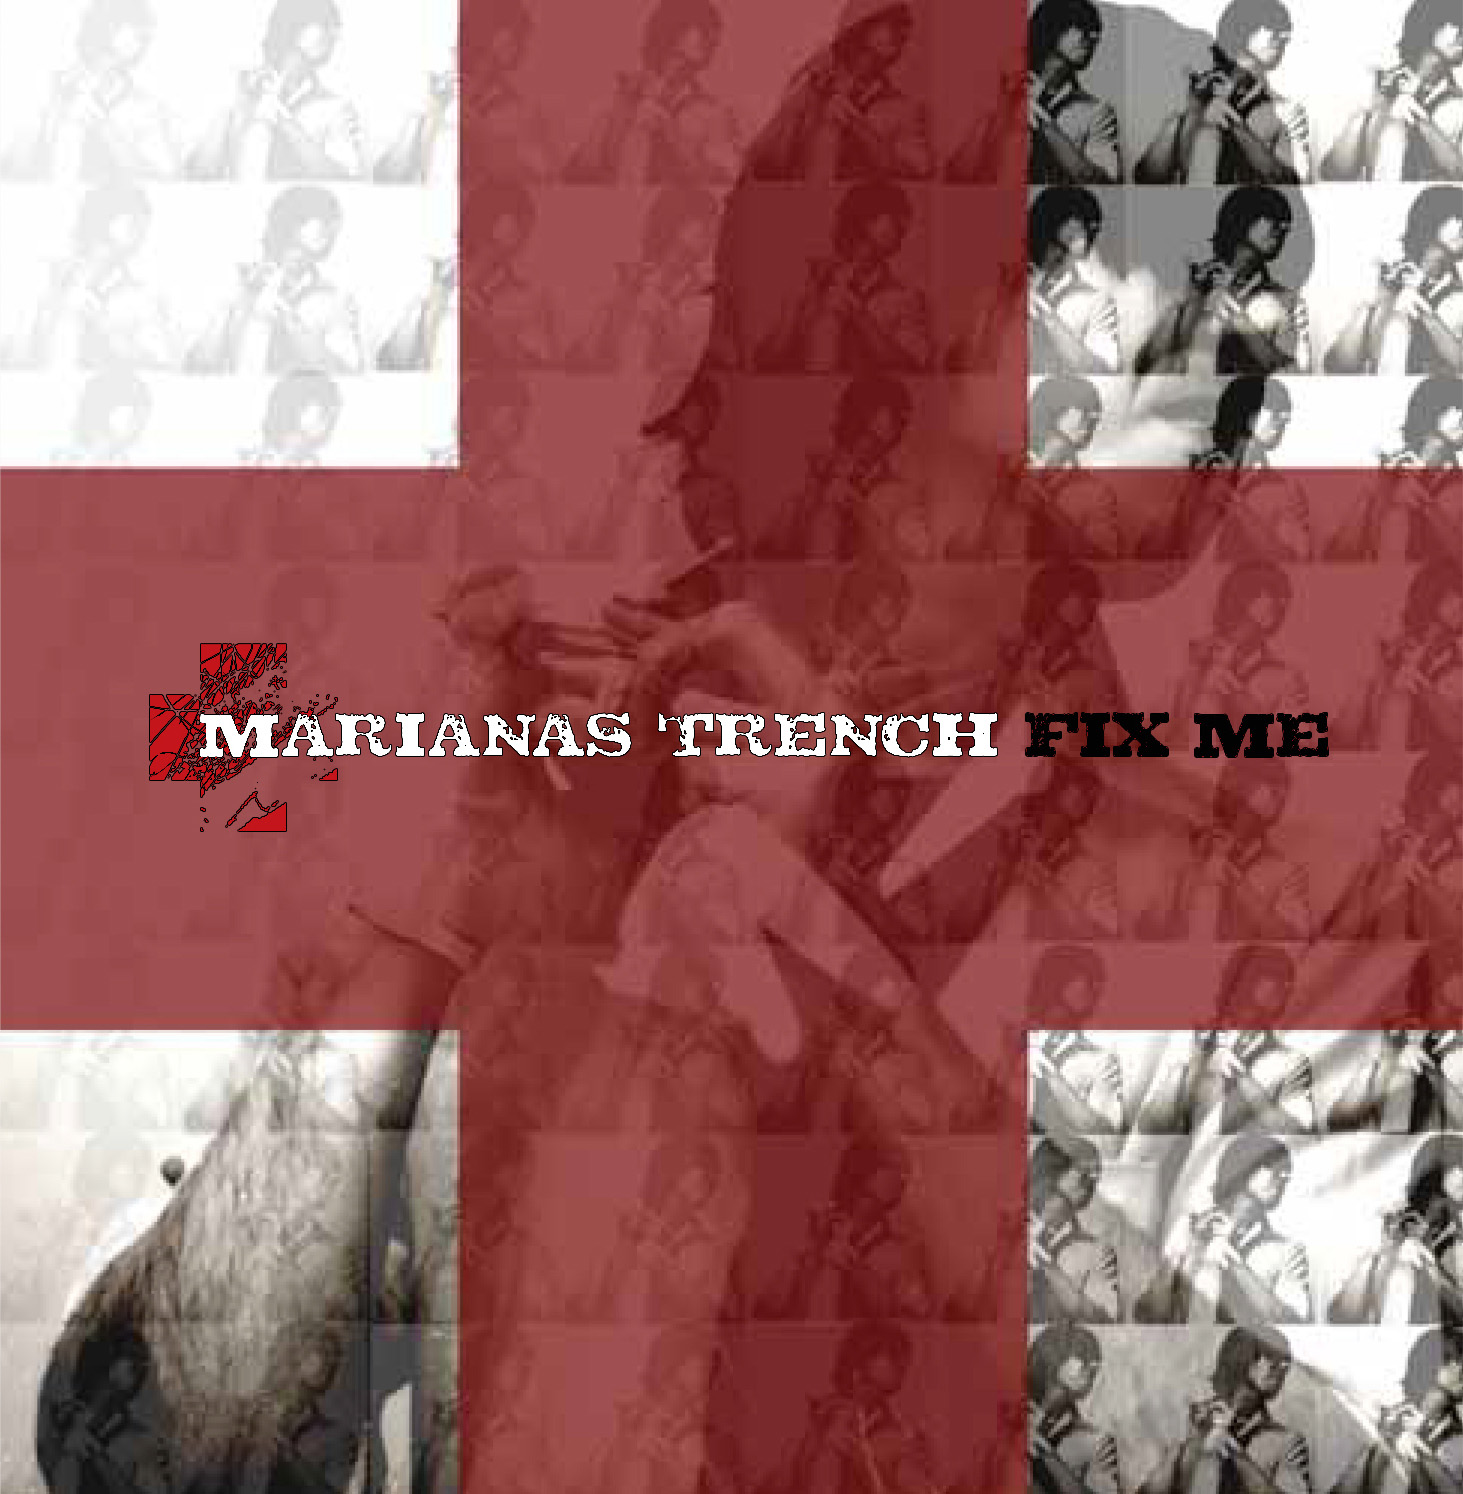 fix-me-marianas-trench-vancouver-photography-mark-maryanovich-album-single-cover